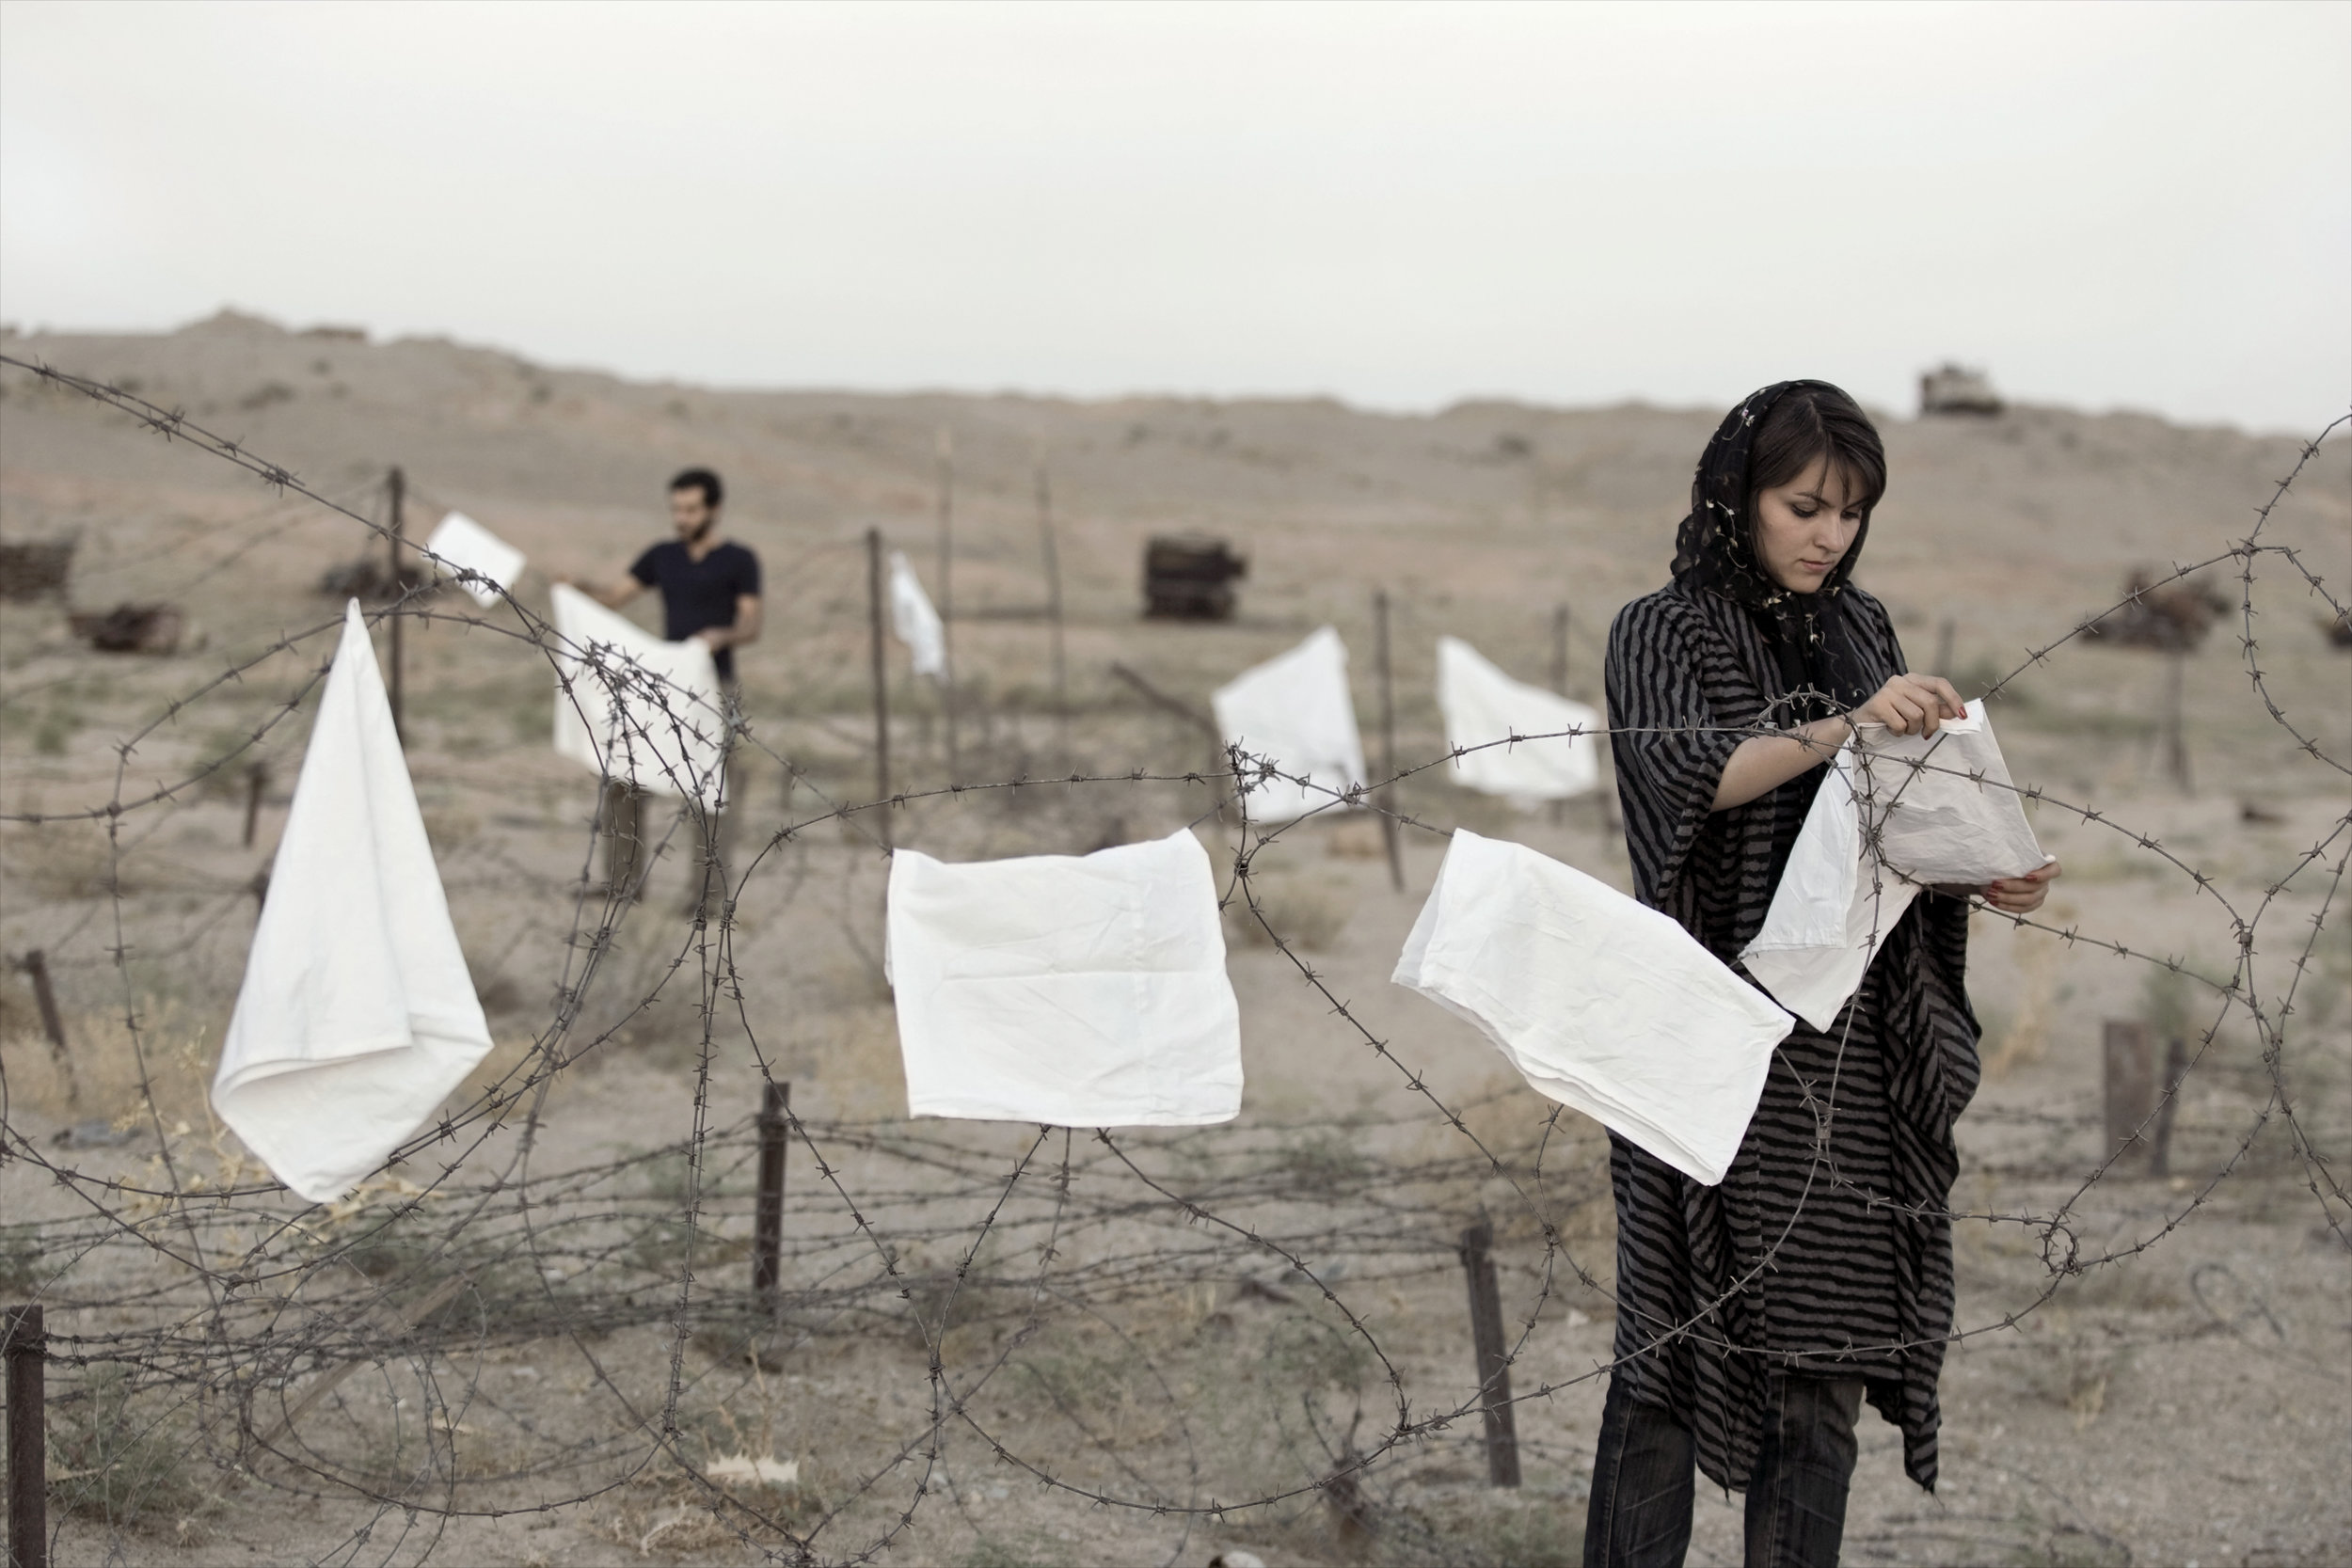 Gohar Dashti  Today's Life and War  (2008) Photograph, 105 x 70 cm Courtesy the artist